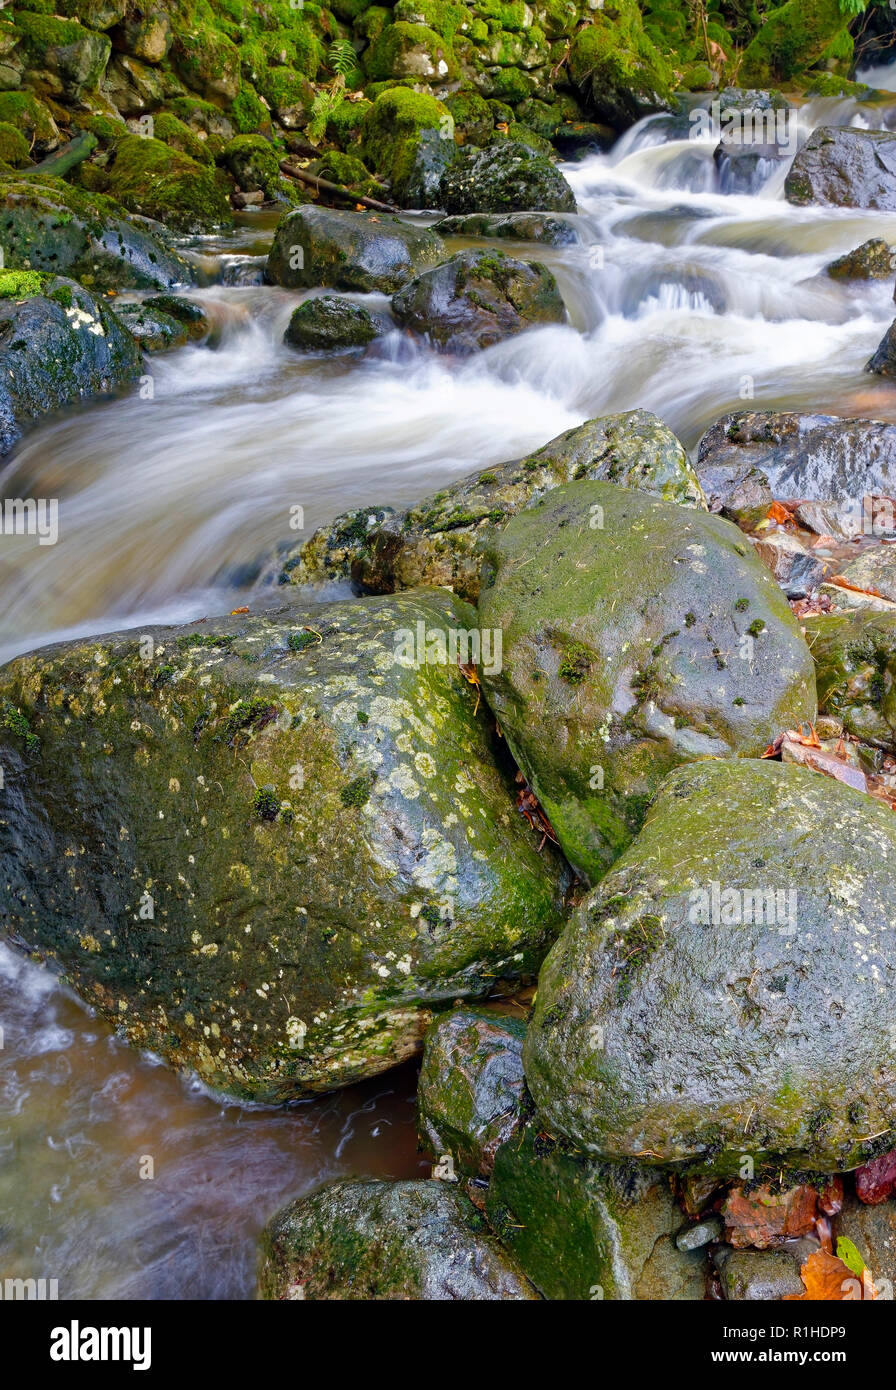 A close up view of Launchy Gill river as it tumbles towards Thirlmere in the English Lake District. - Stock Image